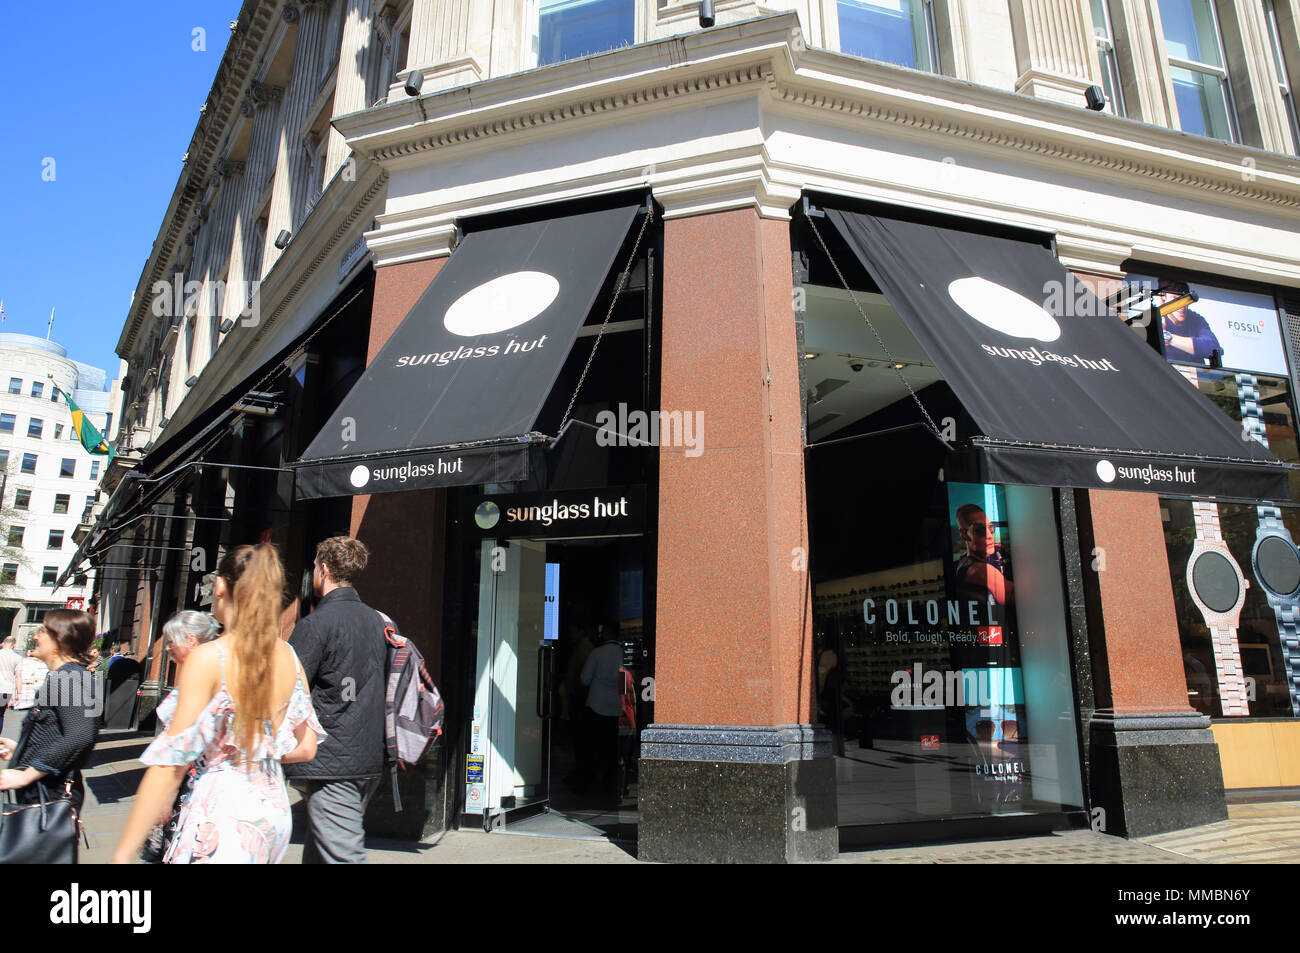 Sunglass Hut on Oxford Street, in central London, England, UK - Stock Image